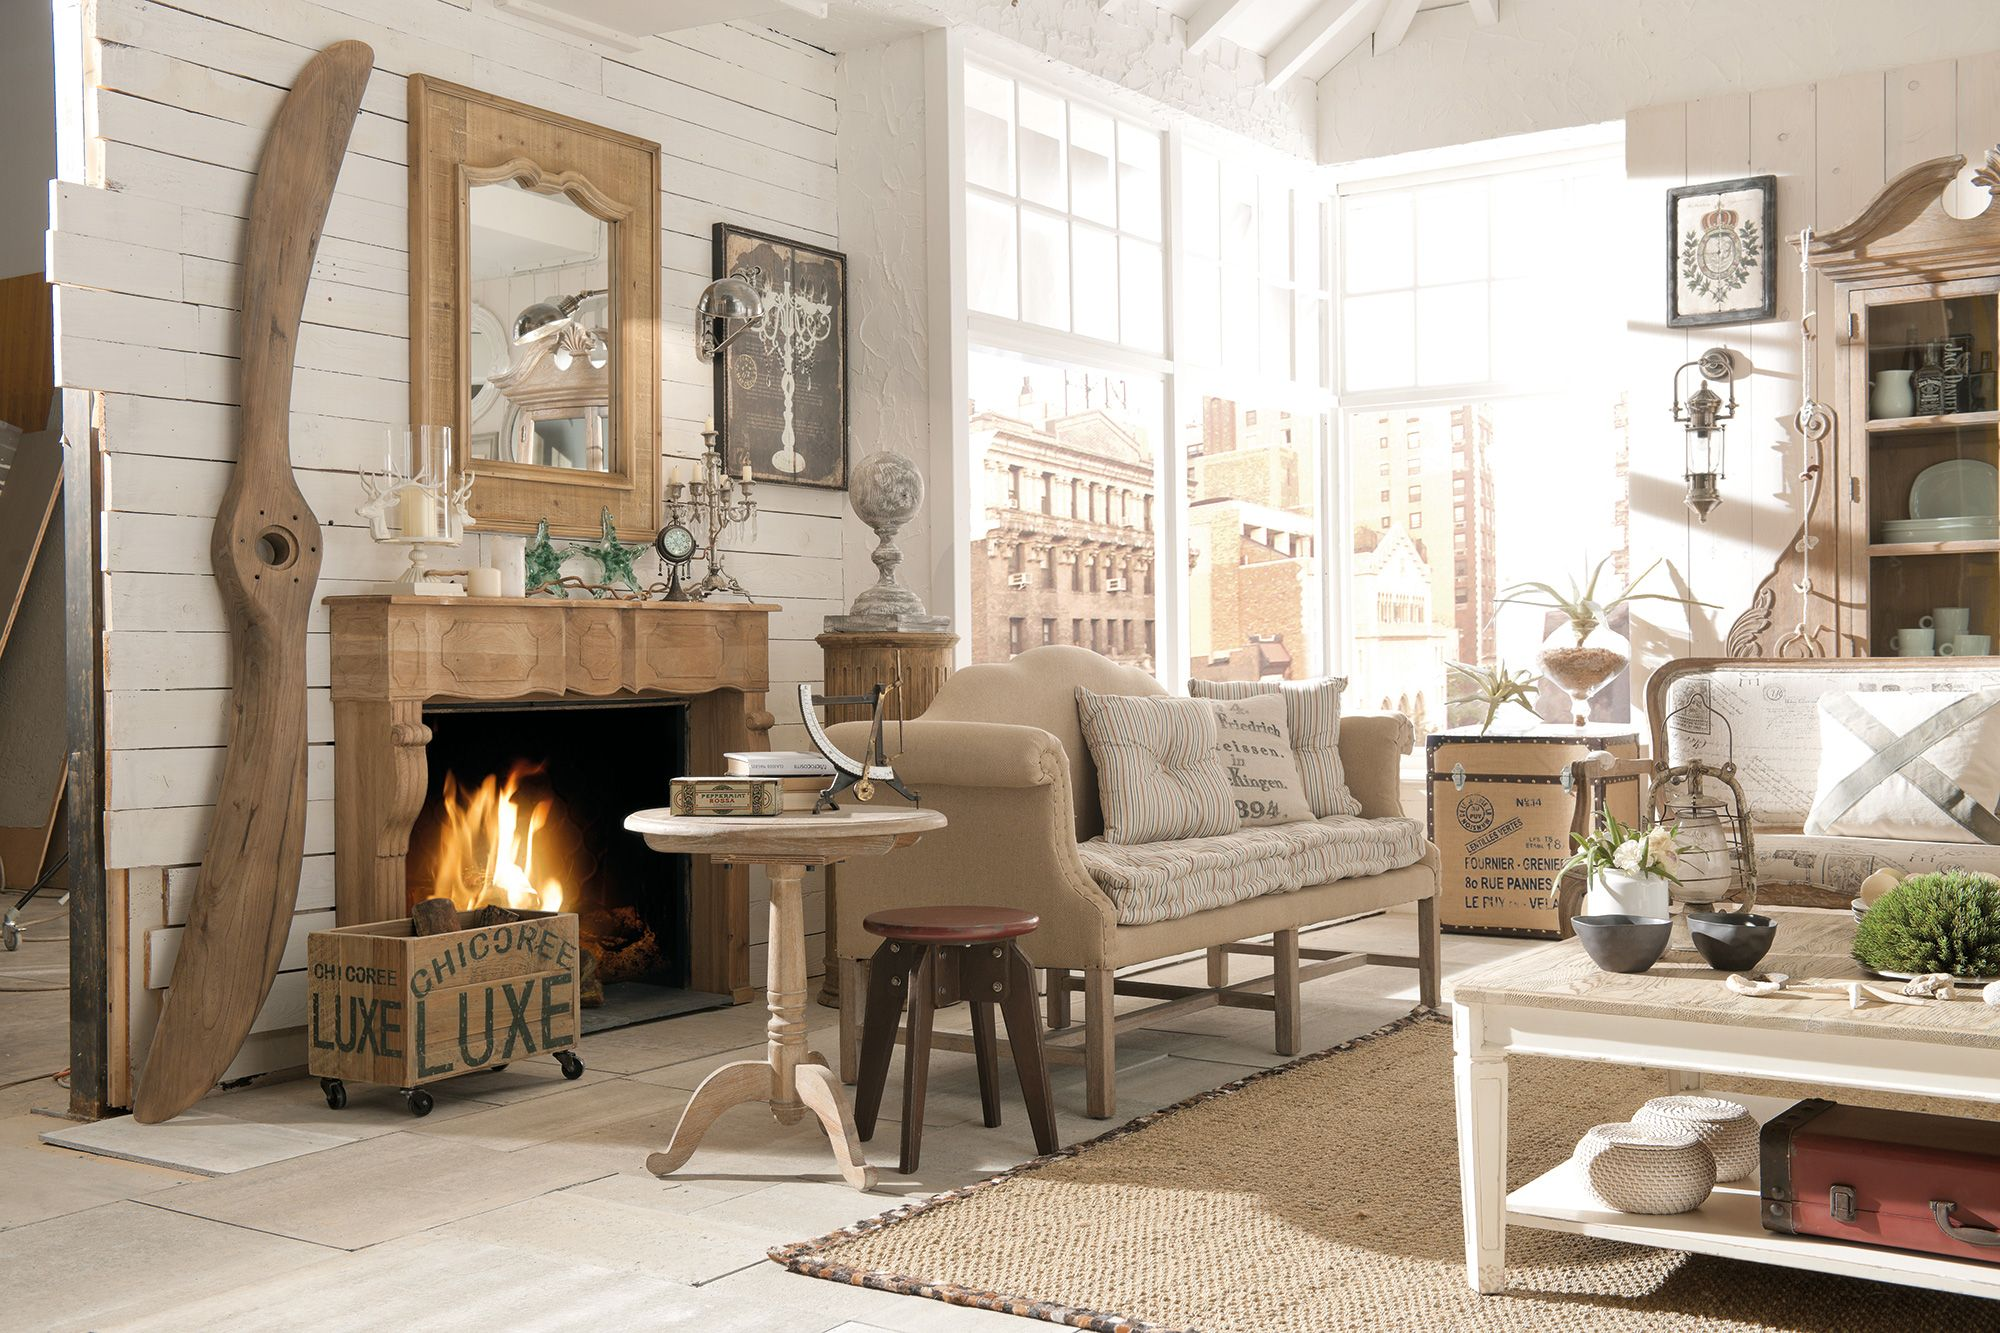 Arredamento country vintage industrial loft urban for Country style arredamento